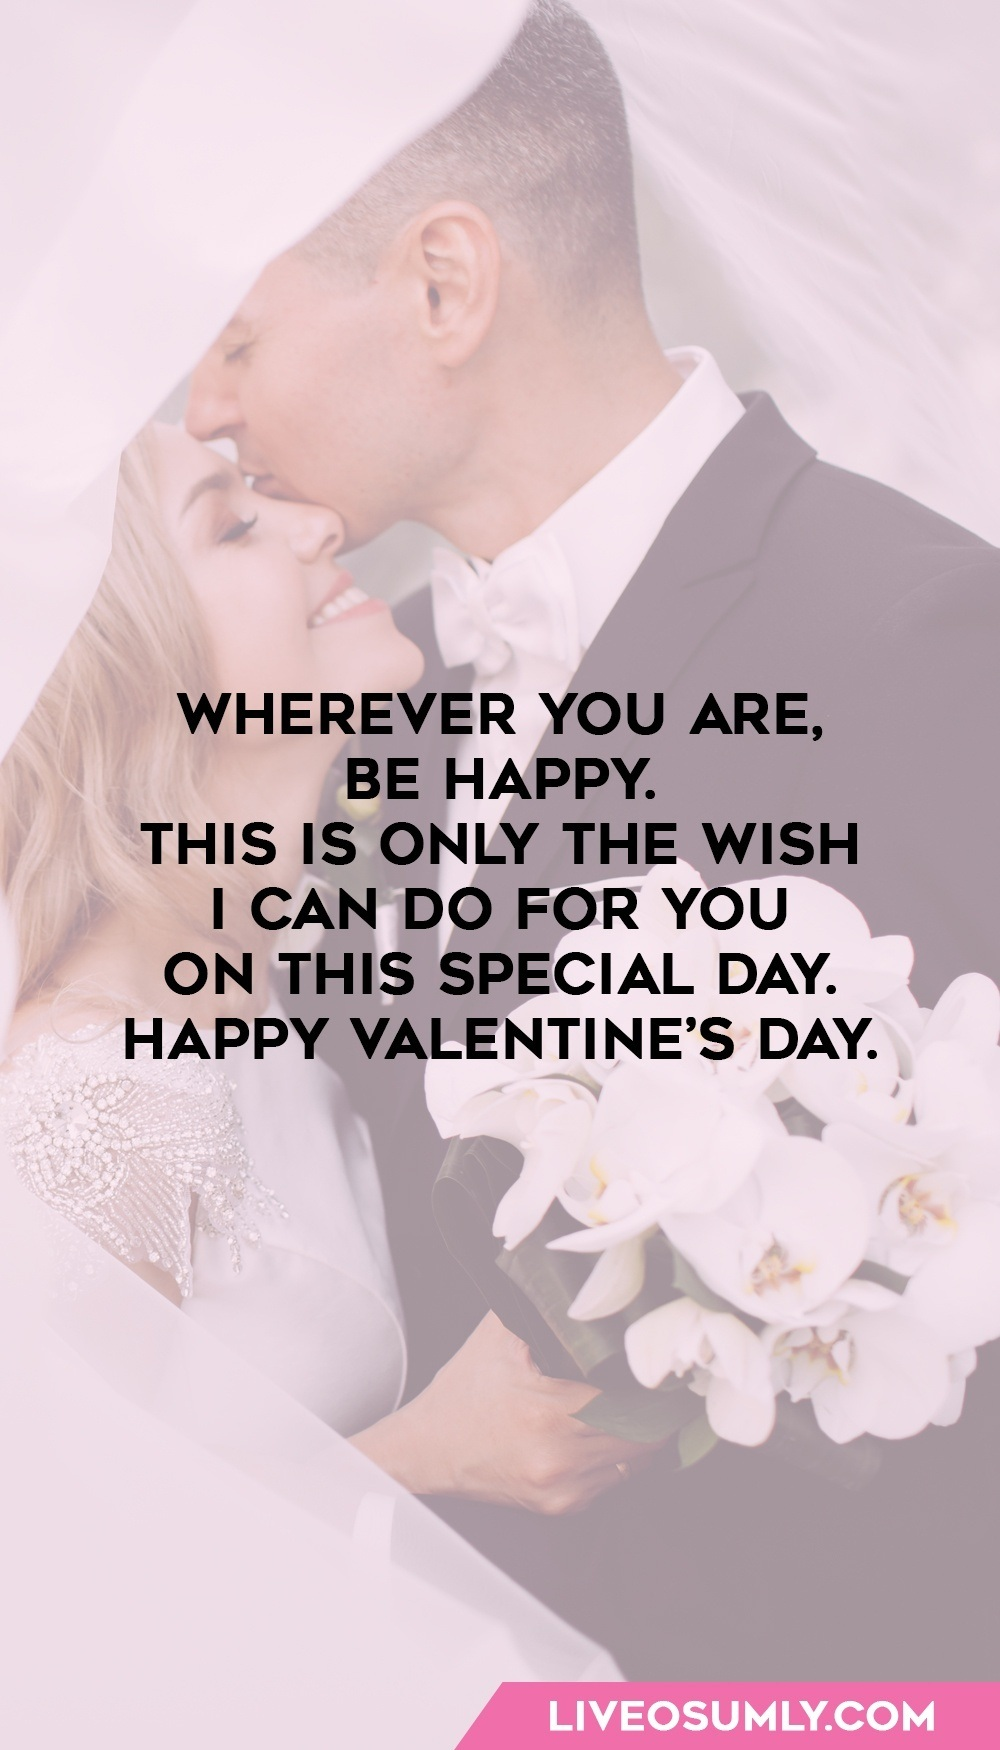 46. Best V Day Quotes